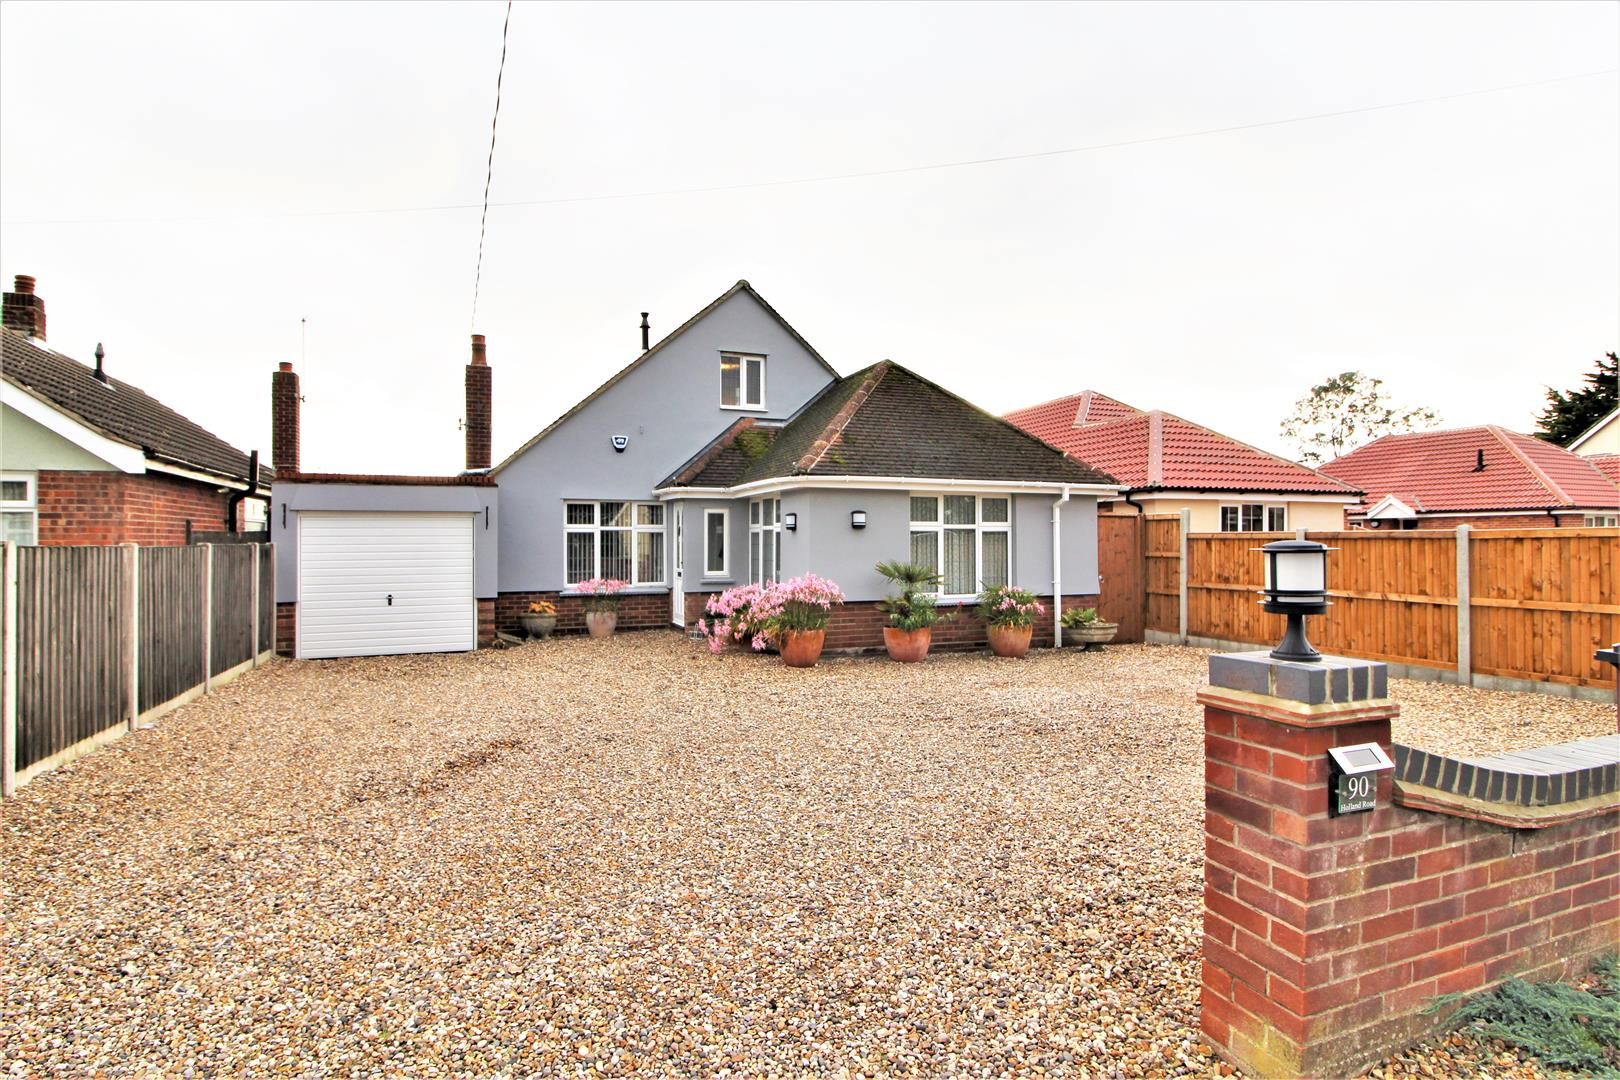 Holland Road, Clacton-On-Sea, Essex, CO16 9RS